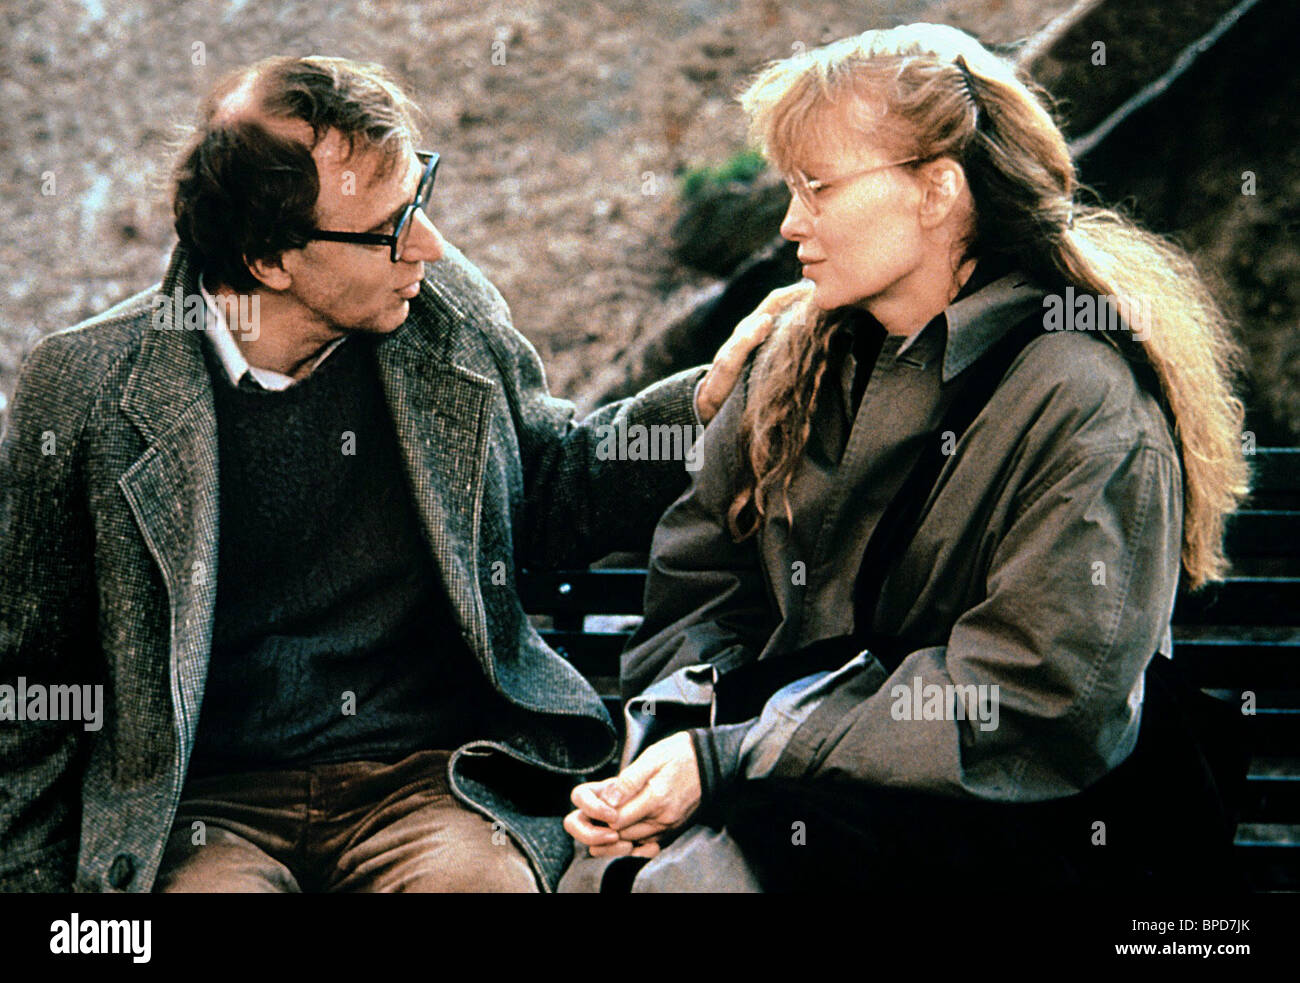 WOODY ALLEN, MIA FARROW, CRIMES AND MISDEMEANORS, 1989 Stock Photo